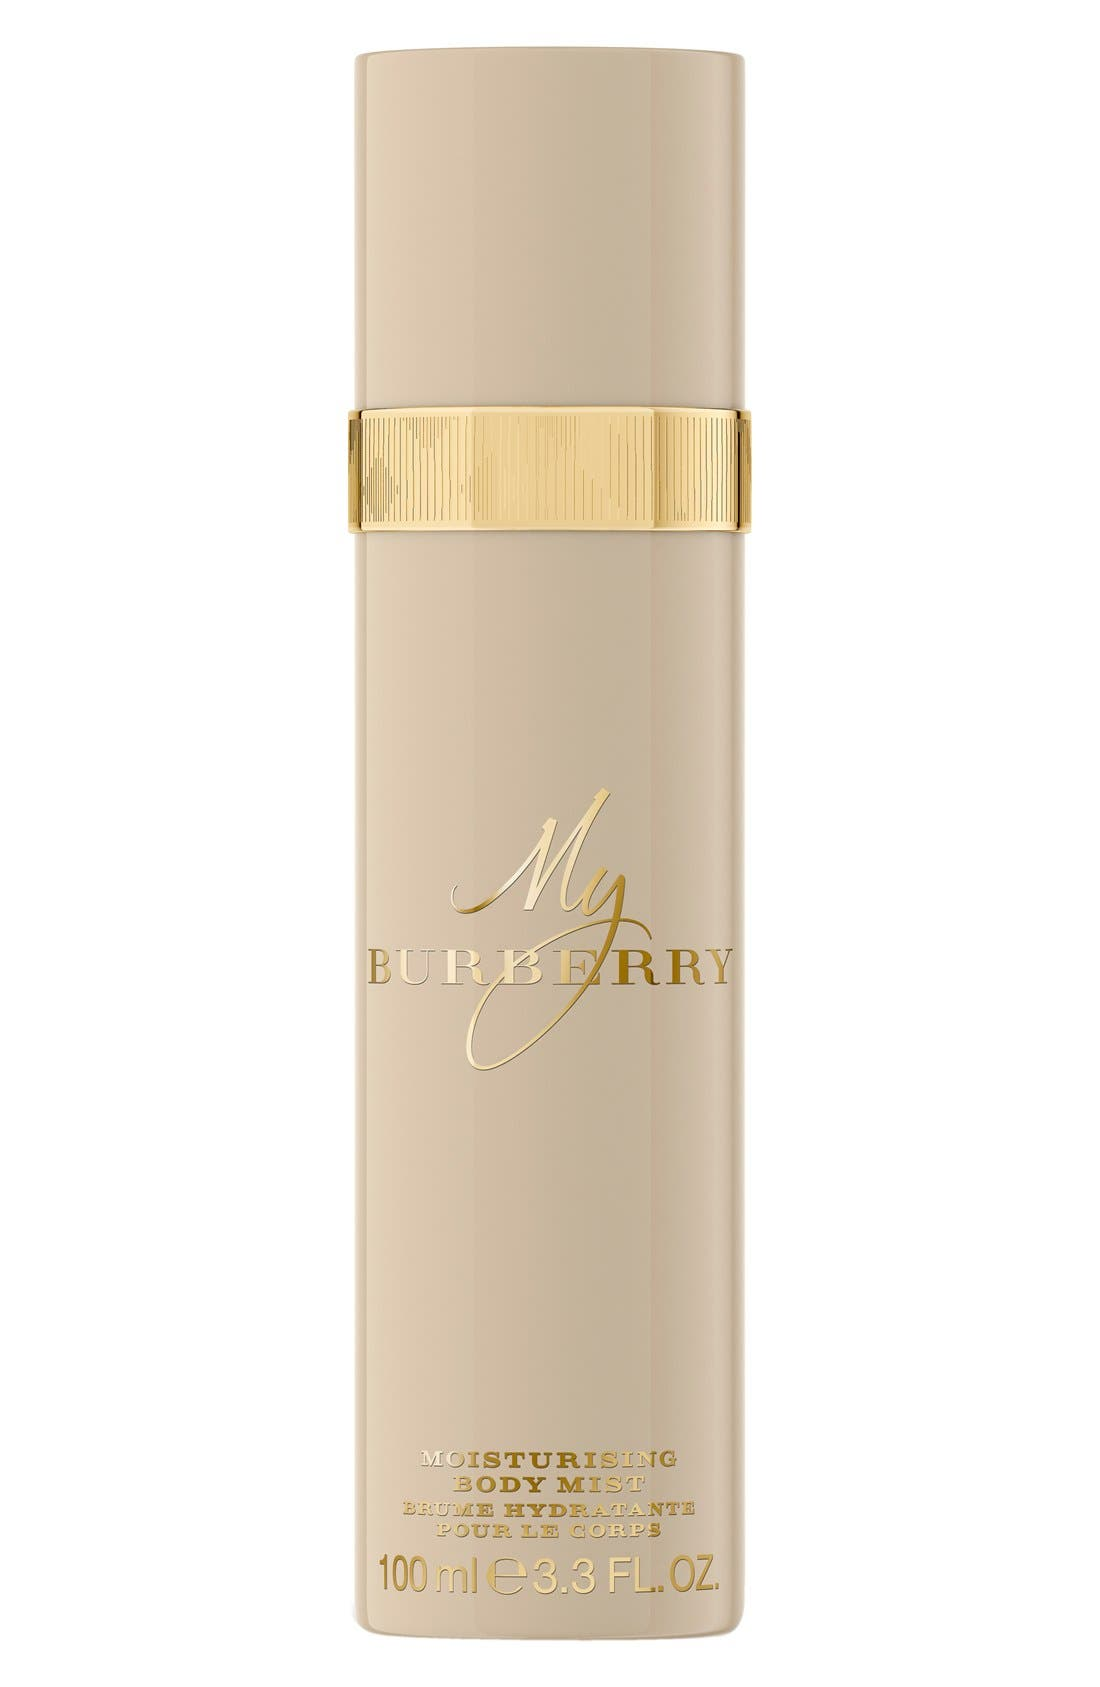 Burberry 'My Burberry' Moisturizing Body Mist,                         Main,                         color, 000